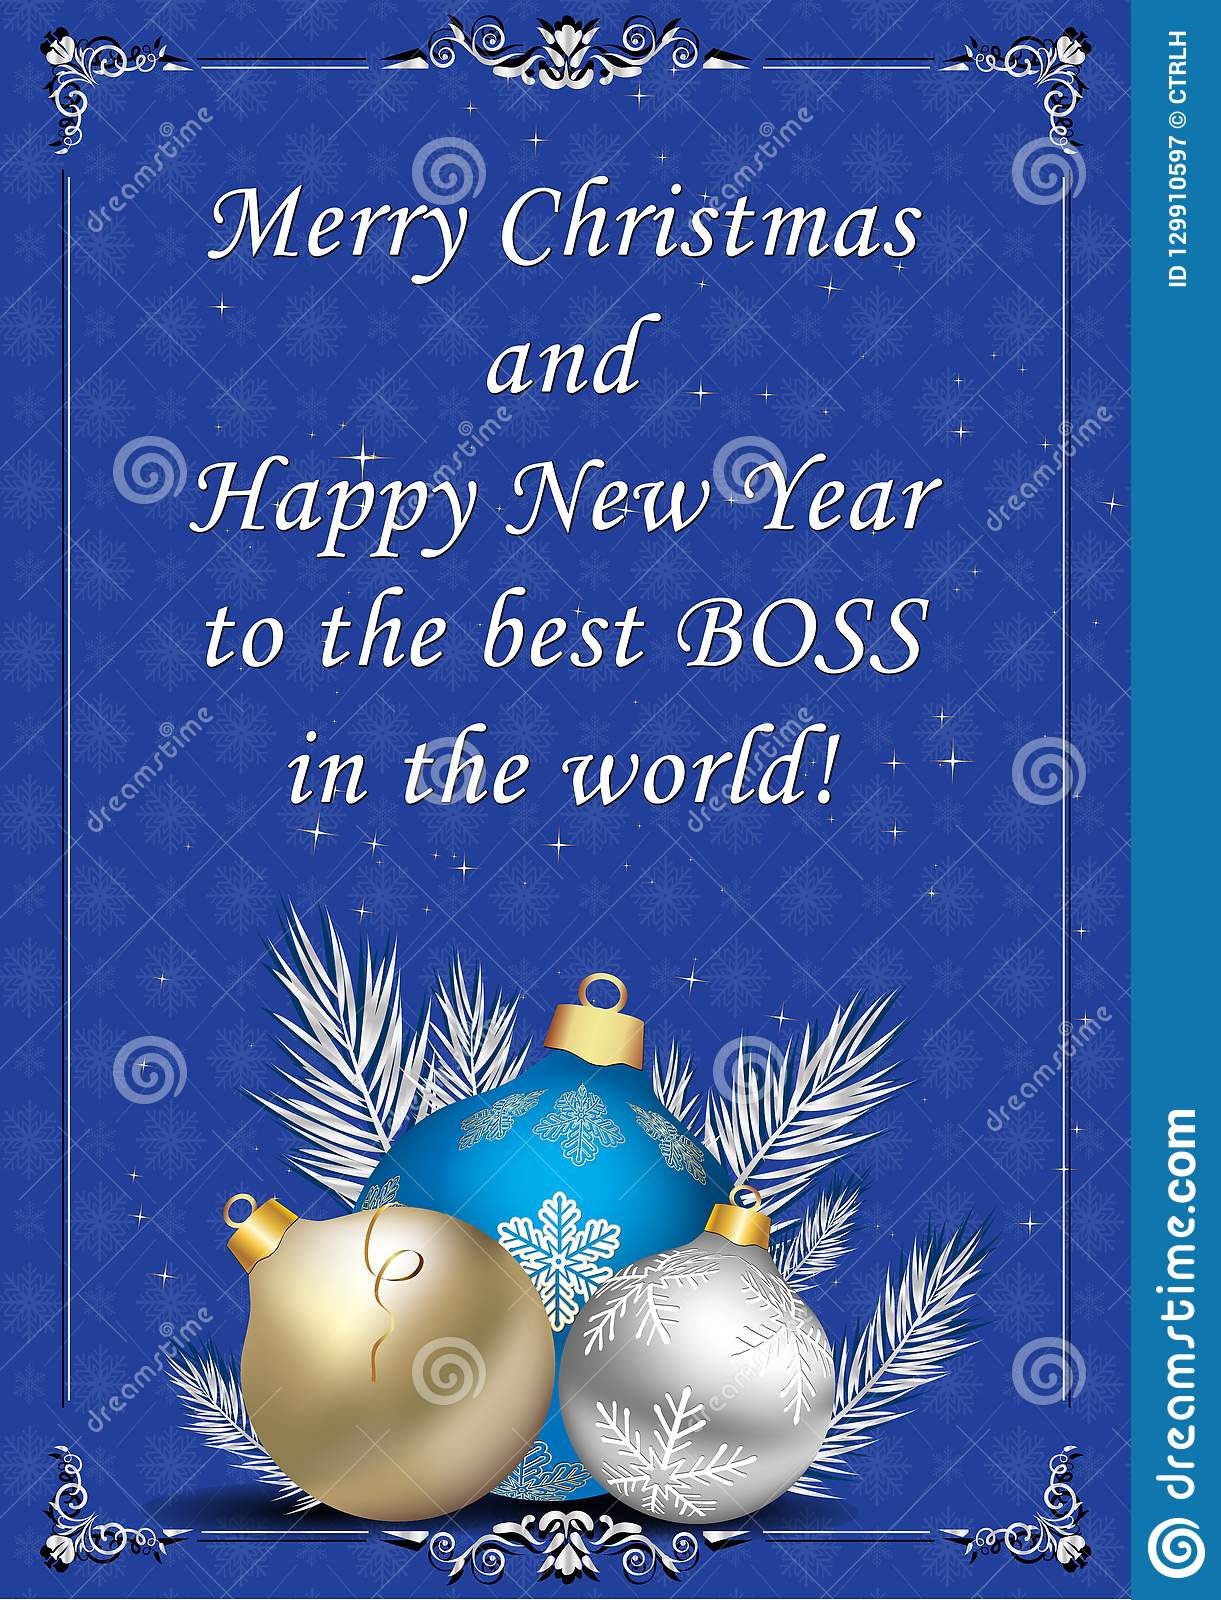 Merry Christmas Boss.Christmas And New Year Greeting Card For The Boss Stock